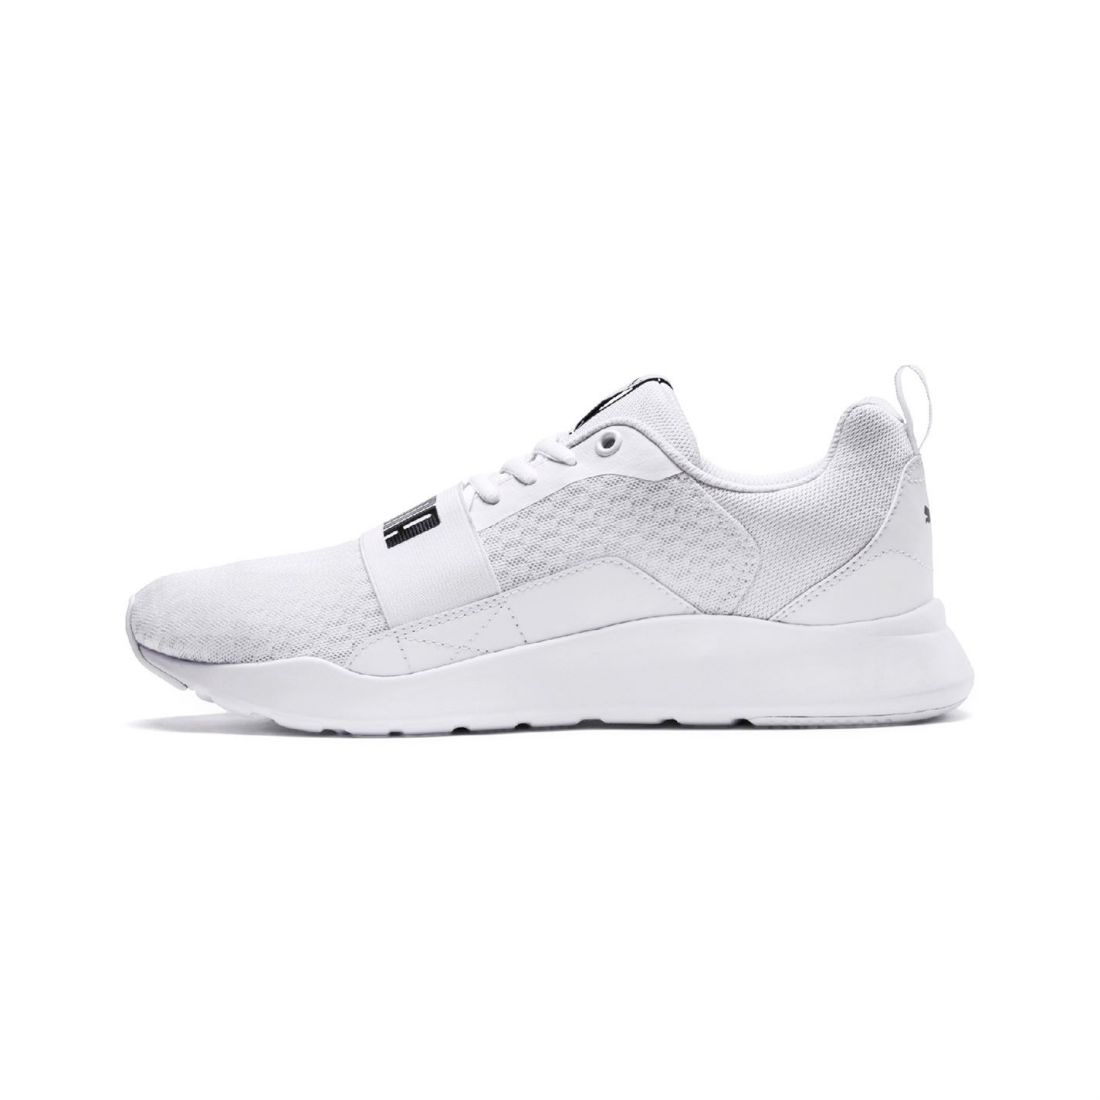 Puma Mens Wired Trainers Runners  Lace Up Breathable Mesh Panels Strap  save up to 30-50% off